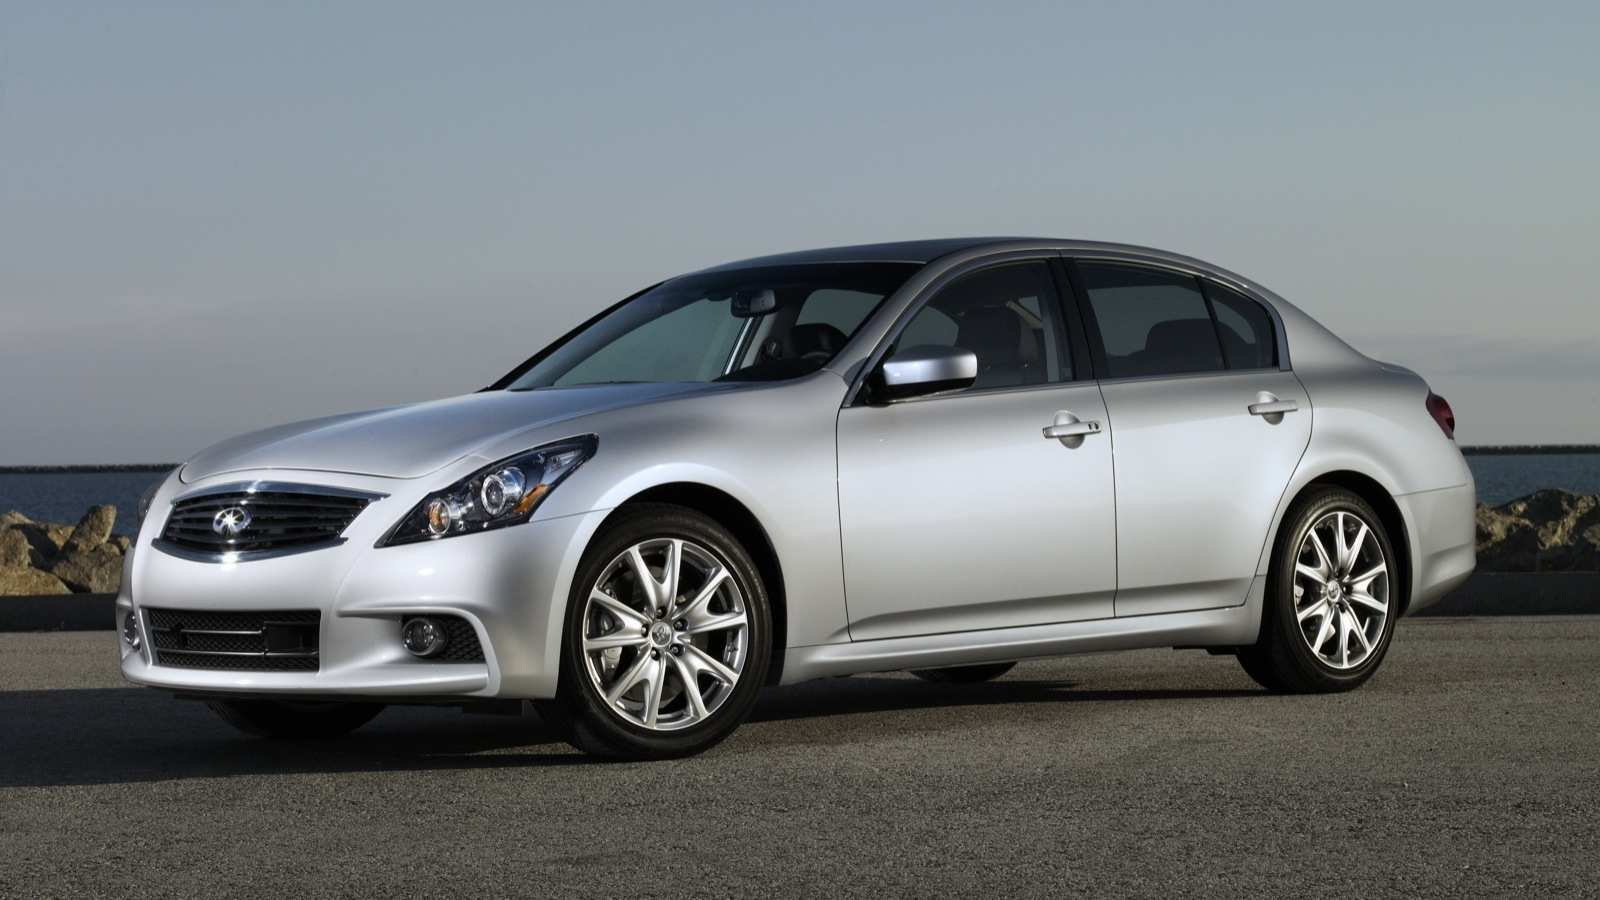 46 Concept of 2020 Infiniti G37 Review for 2020 Infiniti G37